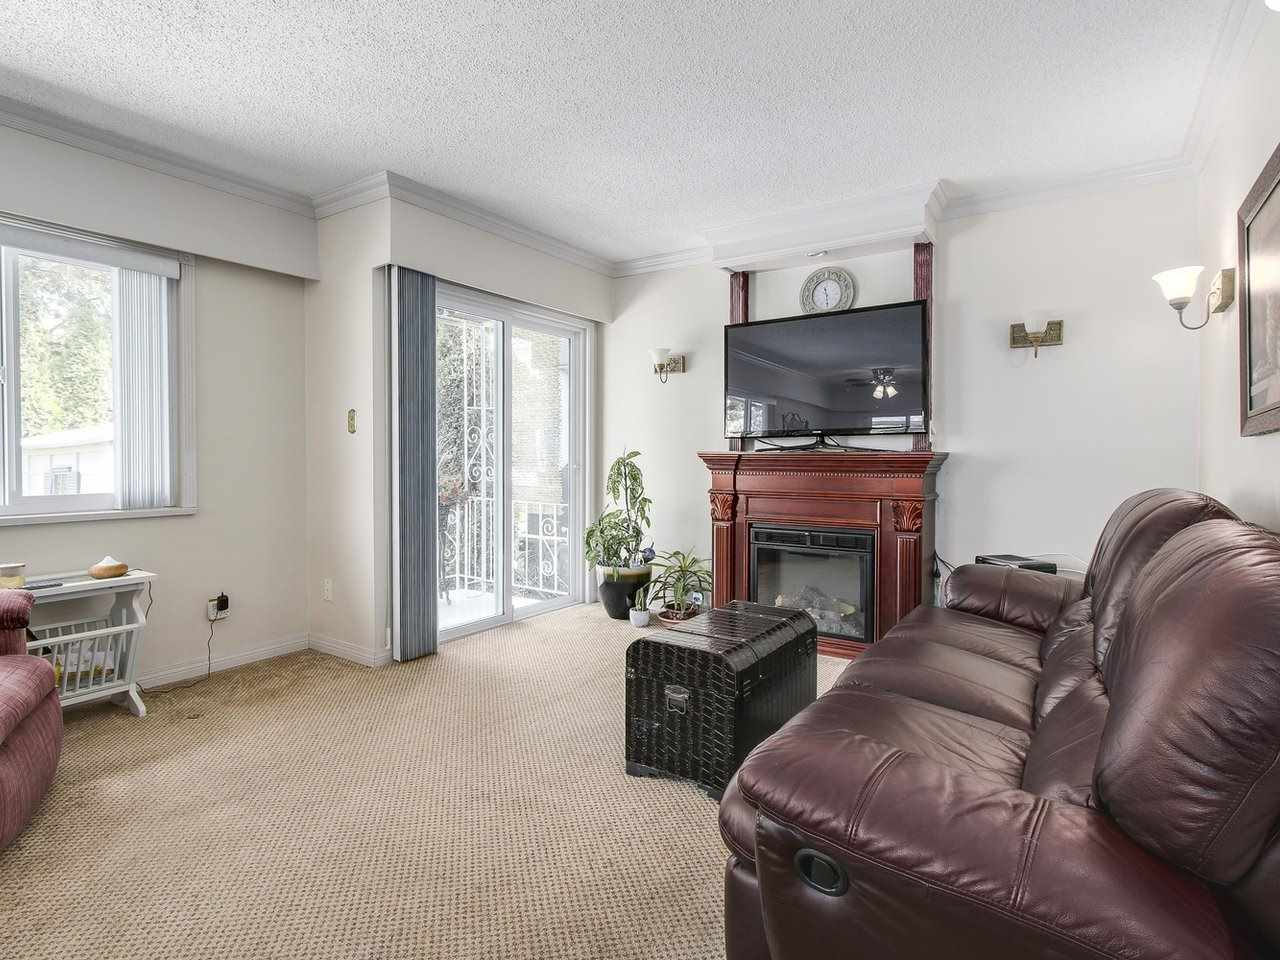 Photo 5: C 5068 47A Avenue in Delta: Ladner Elementary House 1/2 Duplex for sale (Ladner)  : MLS(r) # R2179730